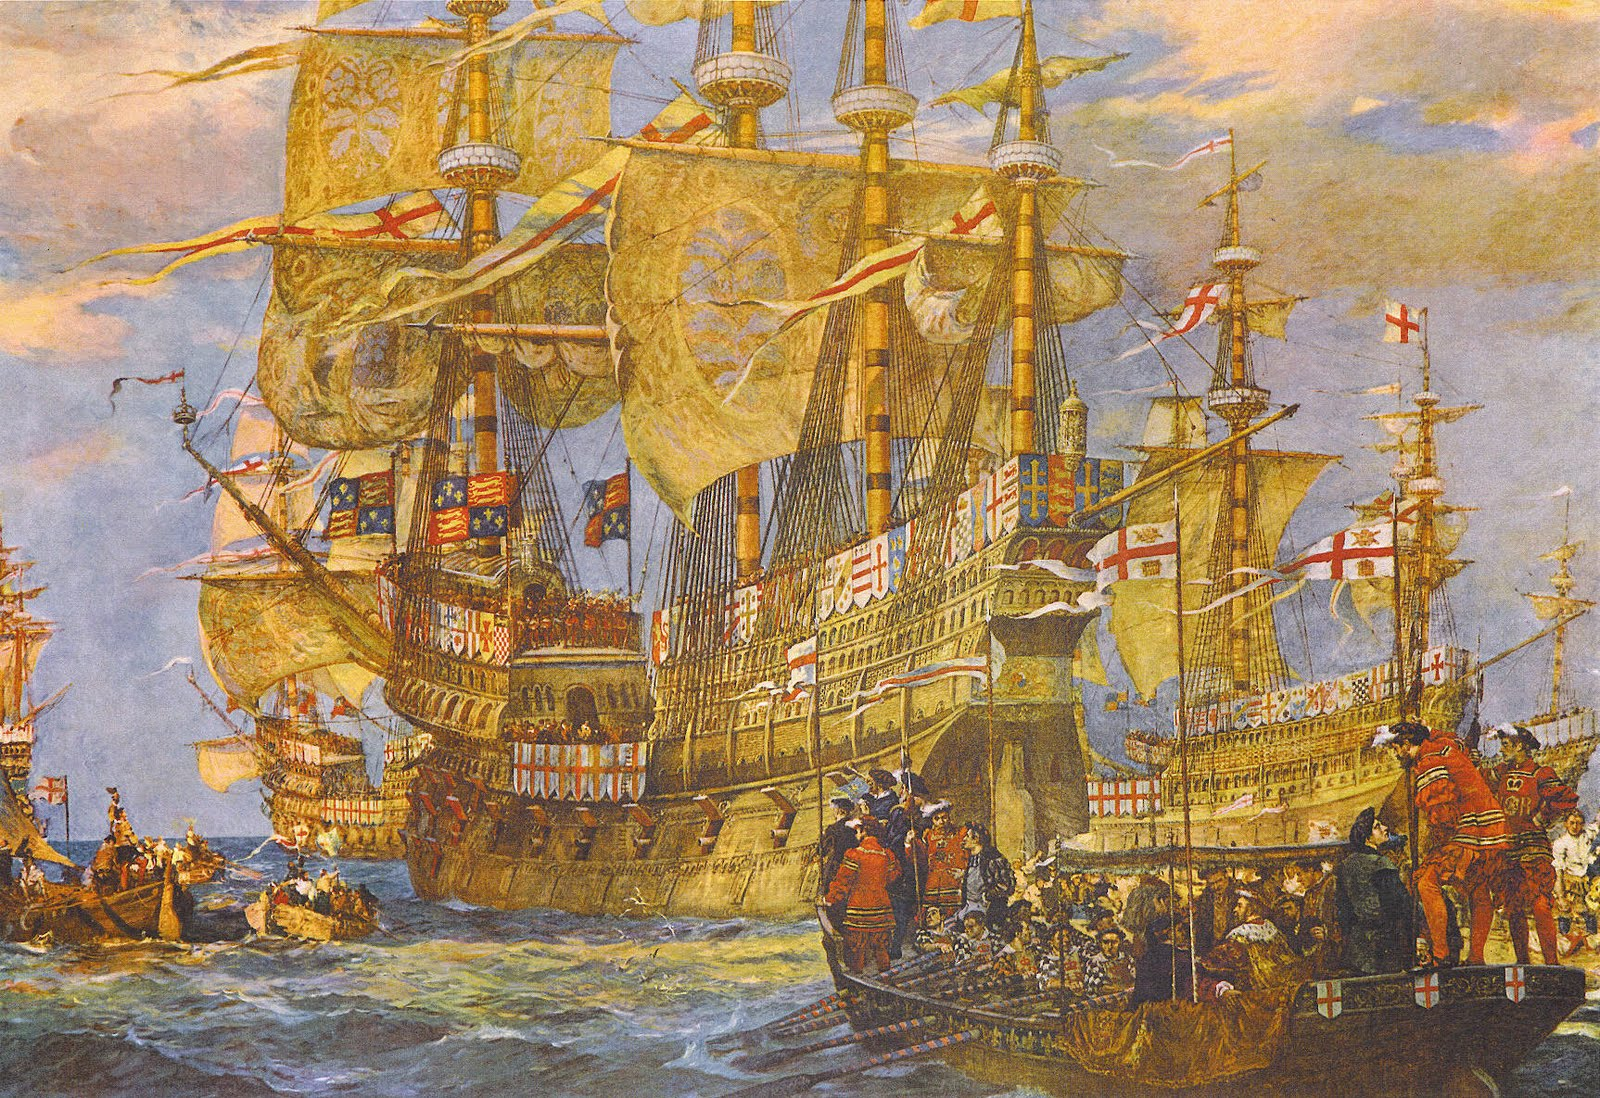 Paulines Pirates Privateers Ships Four Masts And High Castles On Pinterest Ship Figurehead Viking Sailing Embarkation Of Henry Viii Aboard Great Harry By Bernard Finnegan Gribble